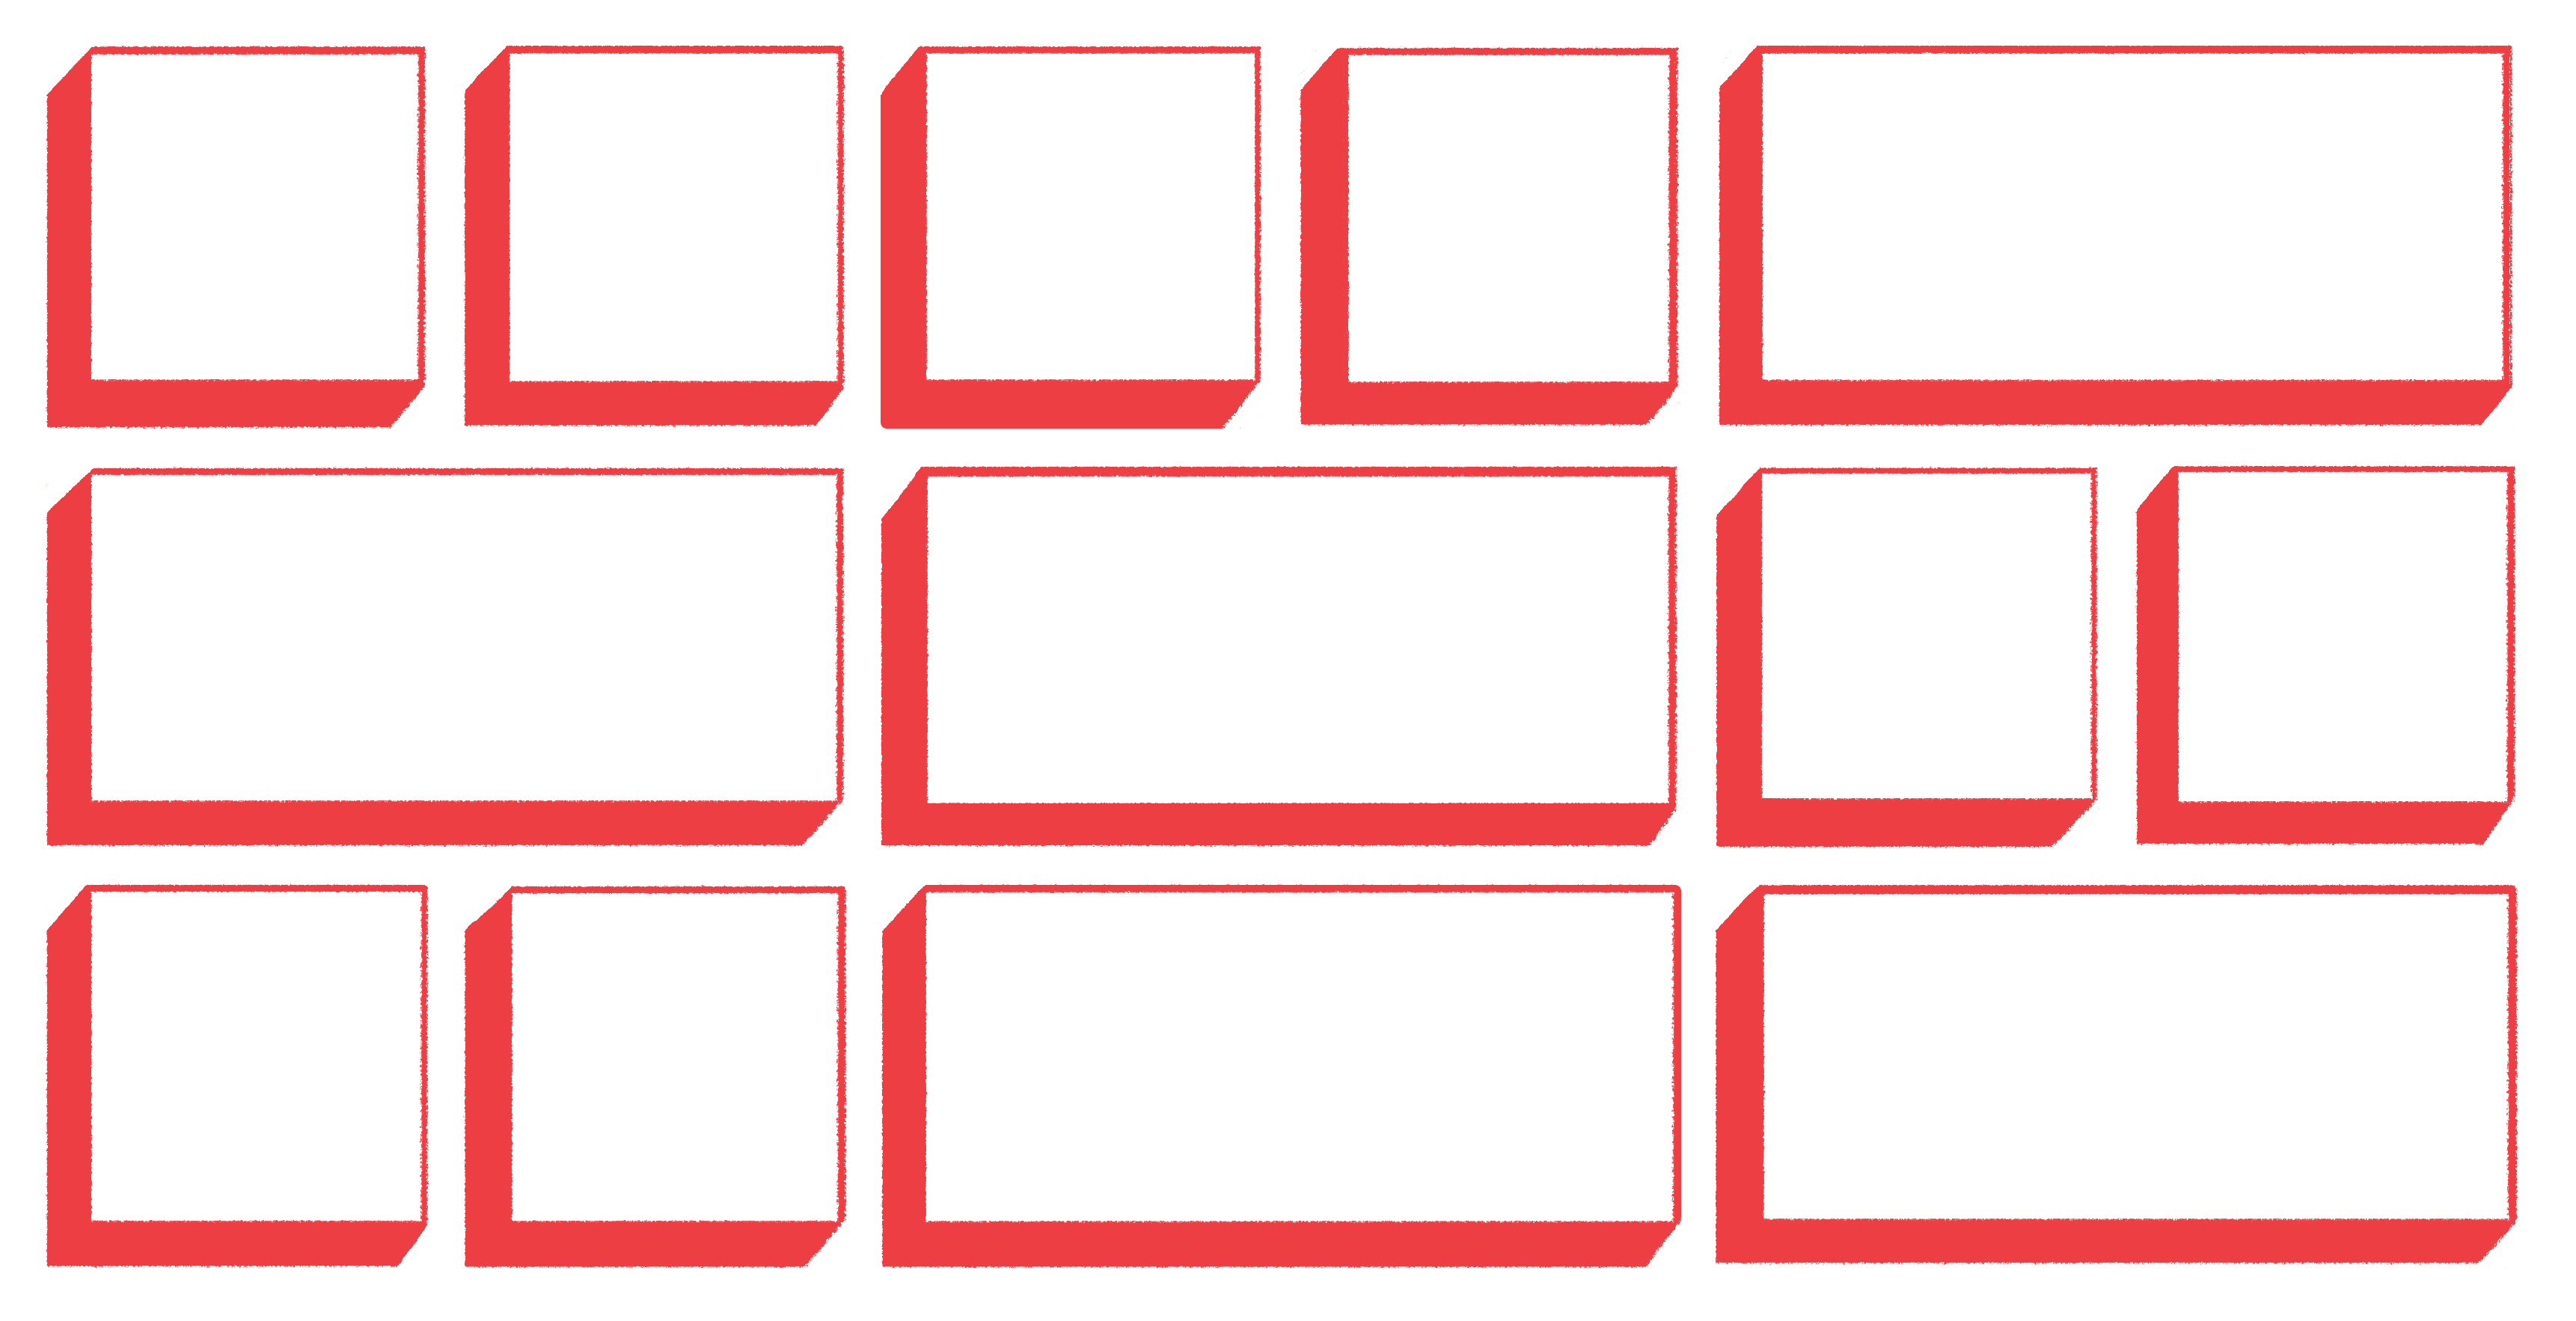 abstract illustration of grid layout